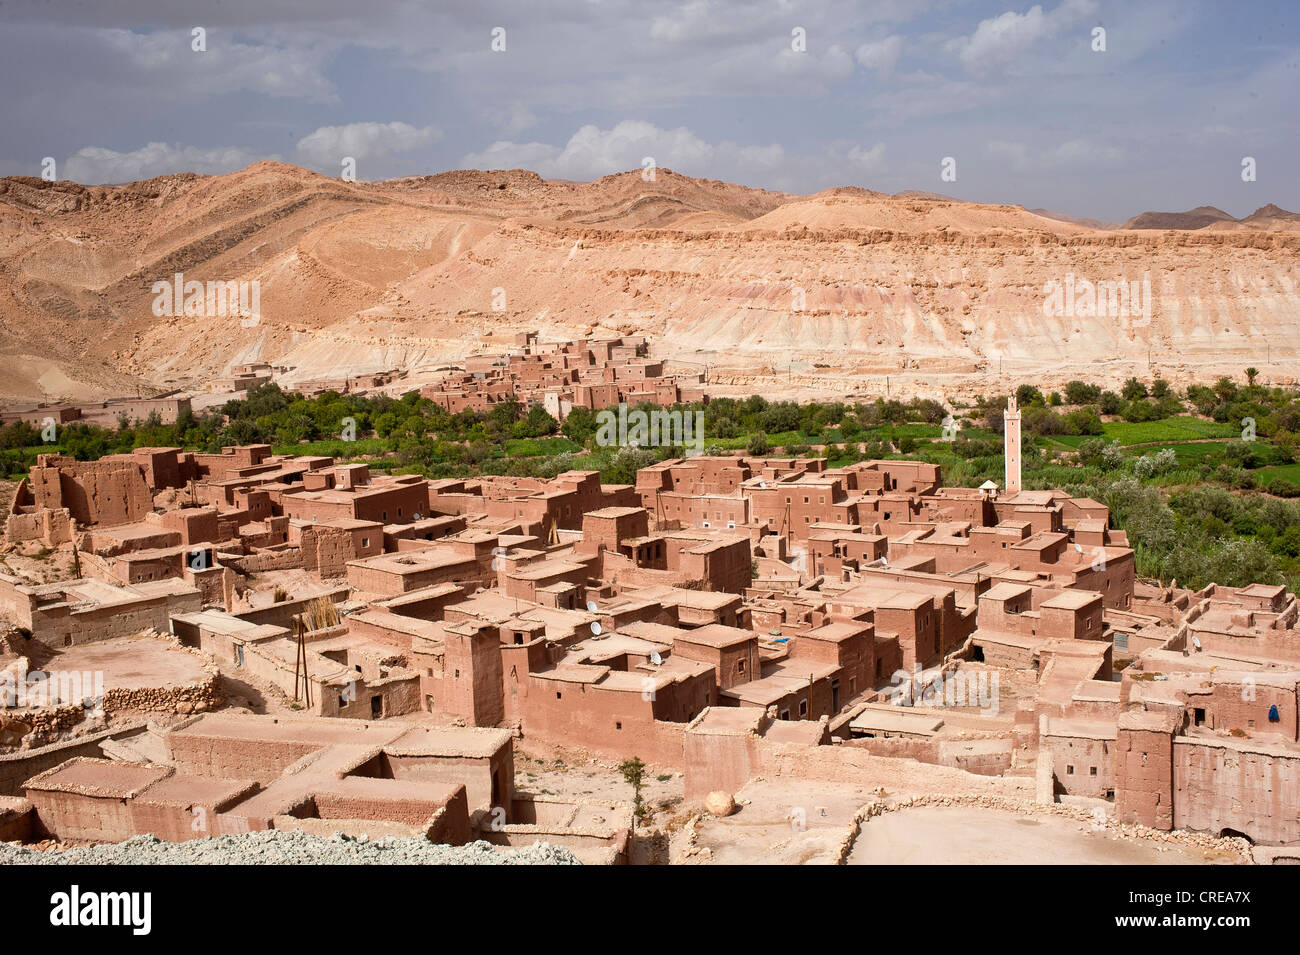 Typical village of mud-walled houses with a mosque and small fields on a riverine oasis, High Atlas Mountains, Morocco, Stock Photo